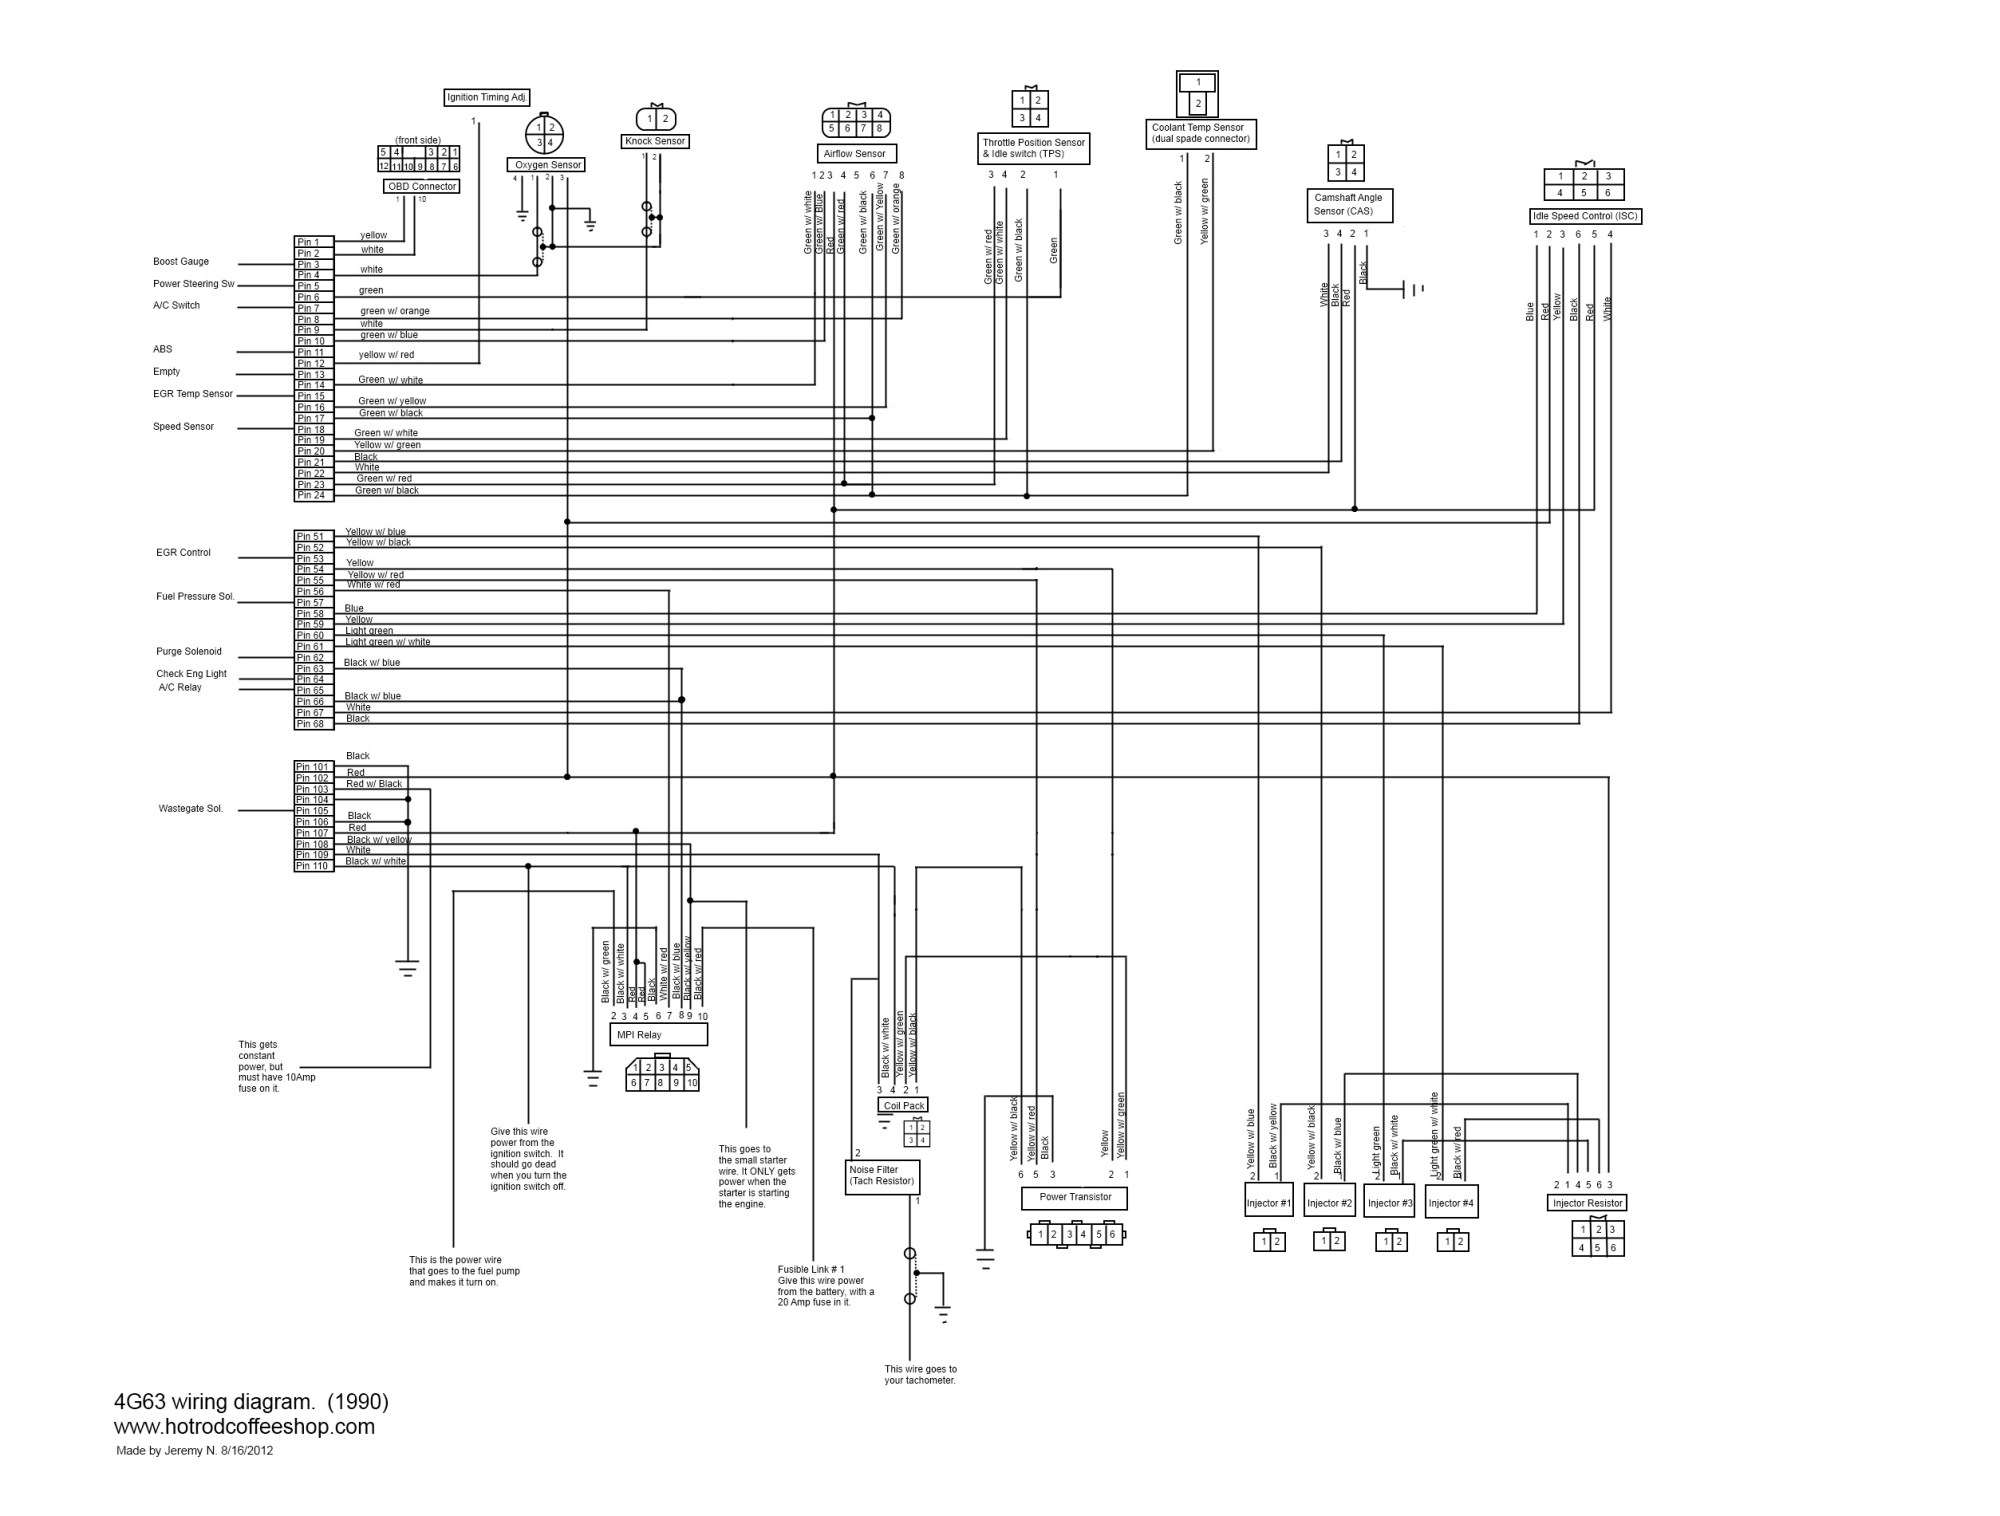 medium resolution of hight resolution of here is a 2g 4g63 dsm wiring diagram that brendon m made